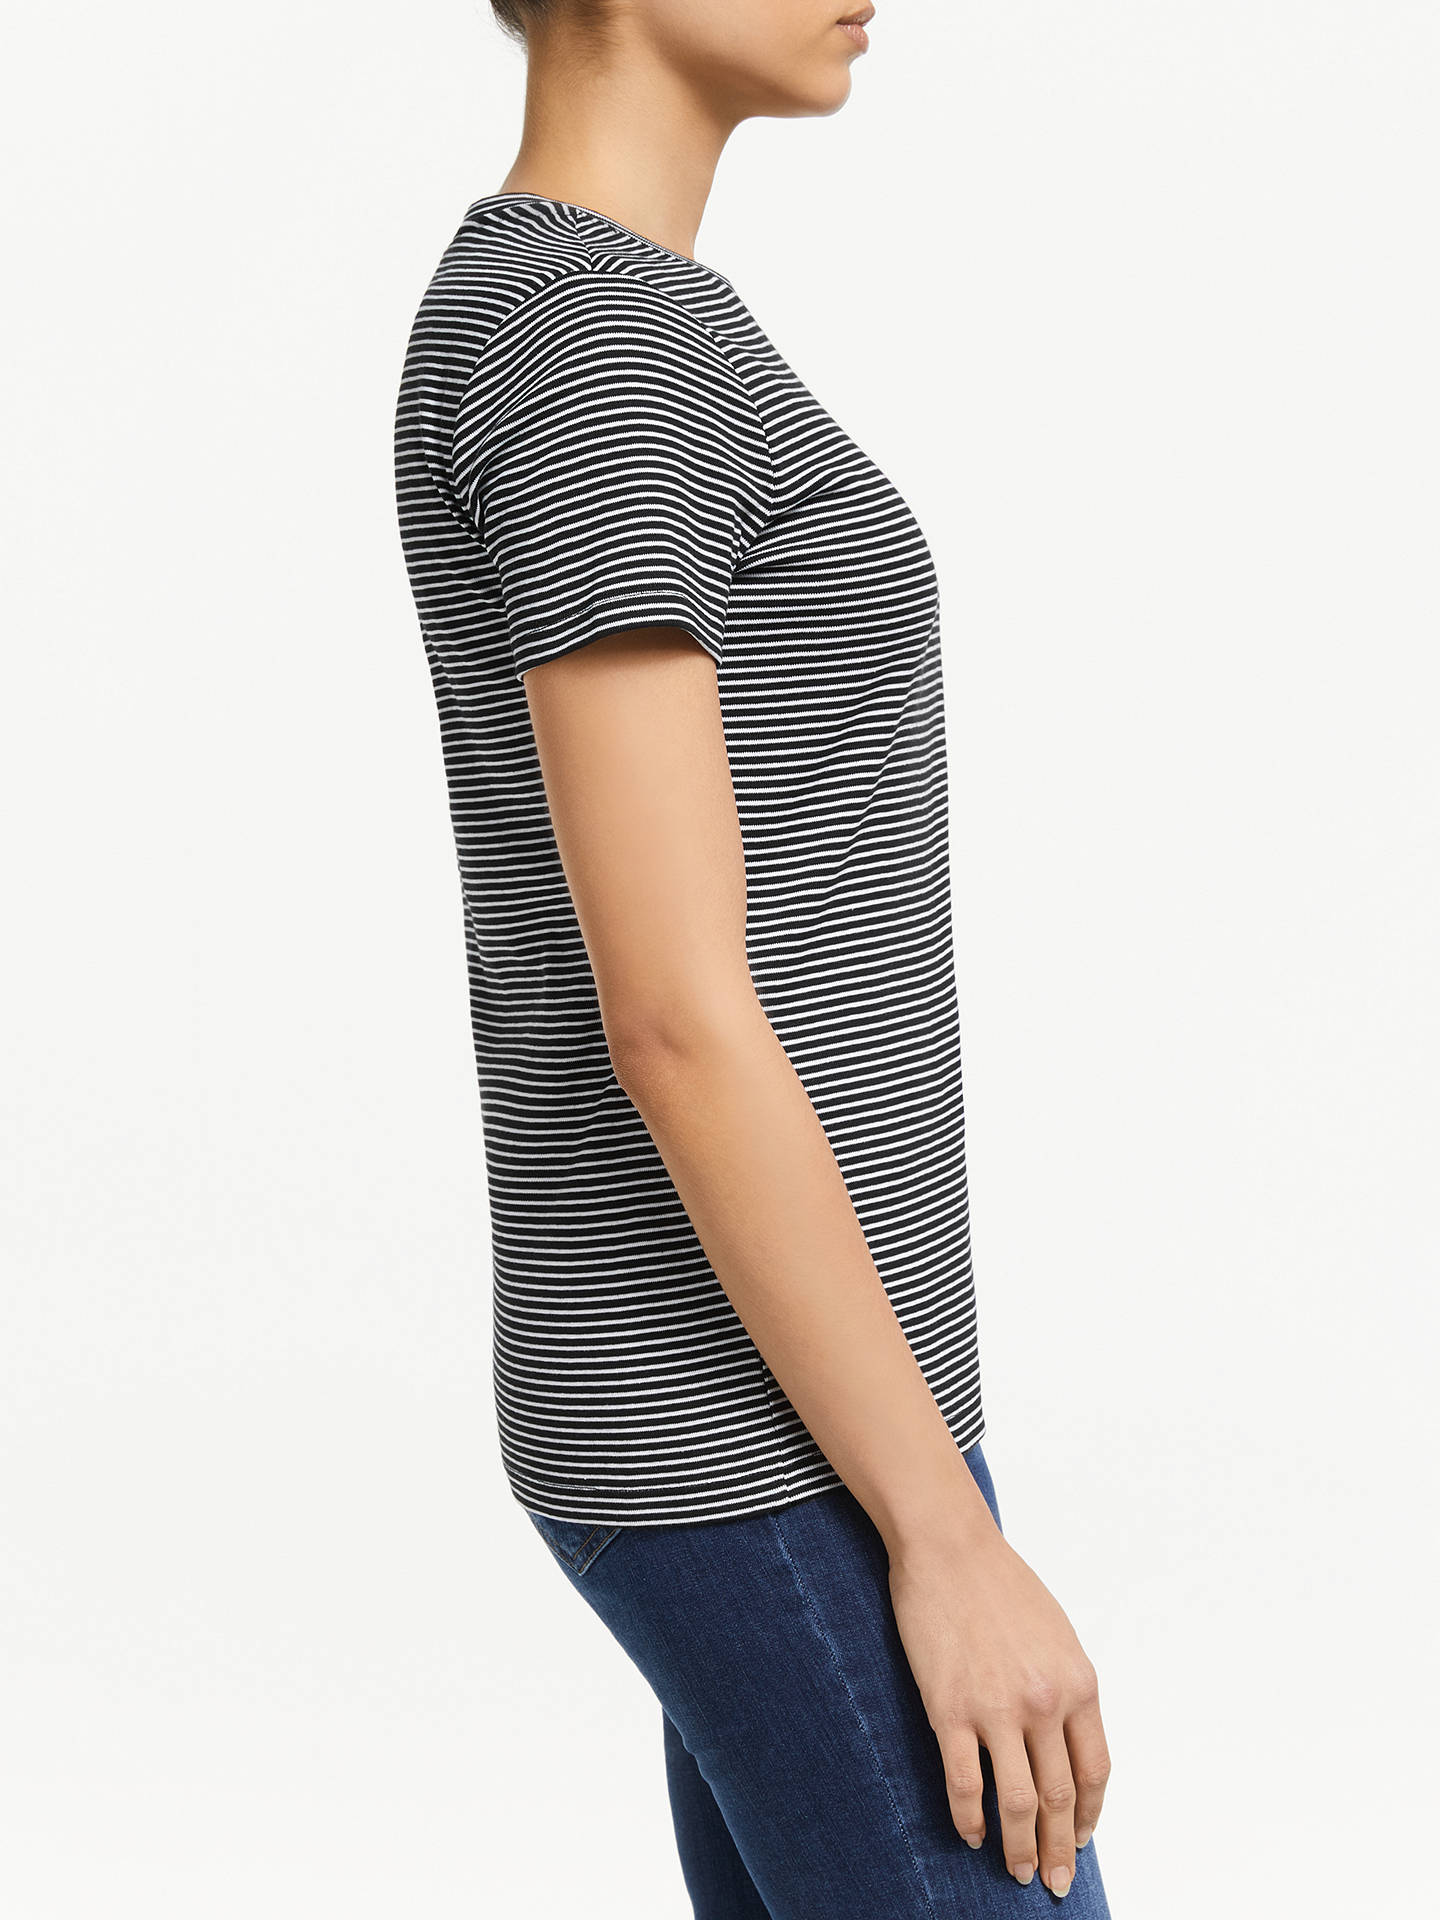 Buy John Lewis & Partners Short Sleeve Crew Neck Stripe T-Shirt, Black/White, 10 Online at johnlewis.com